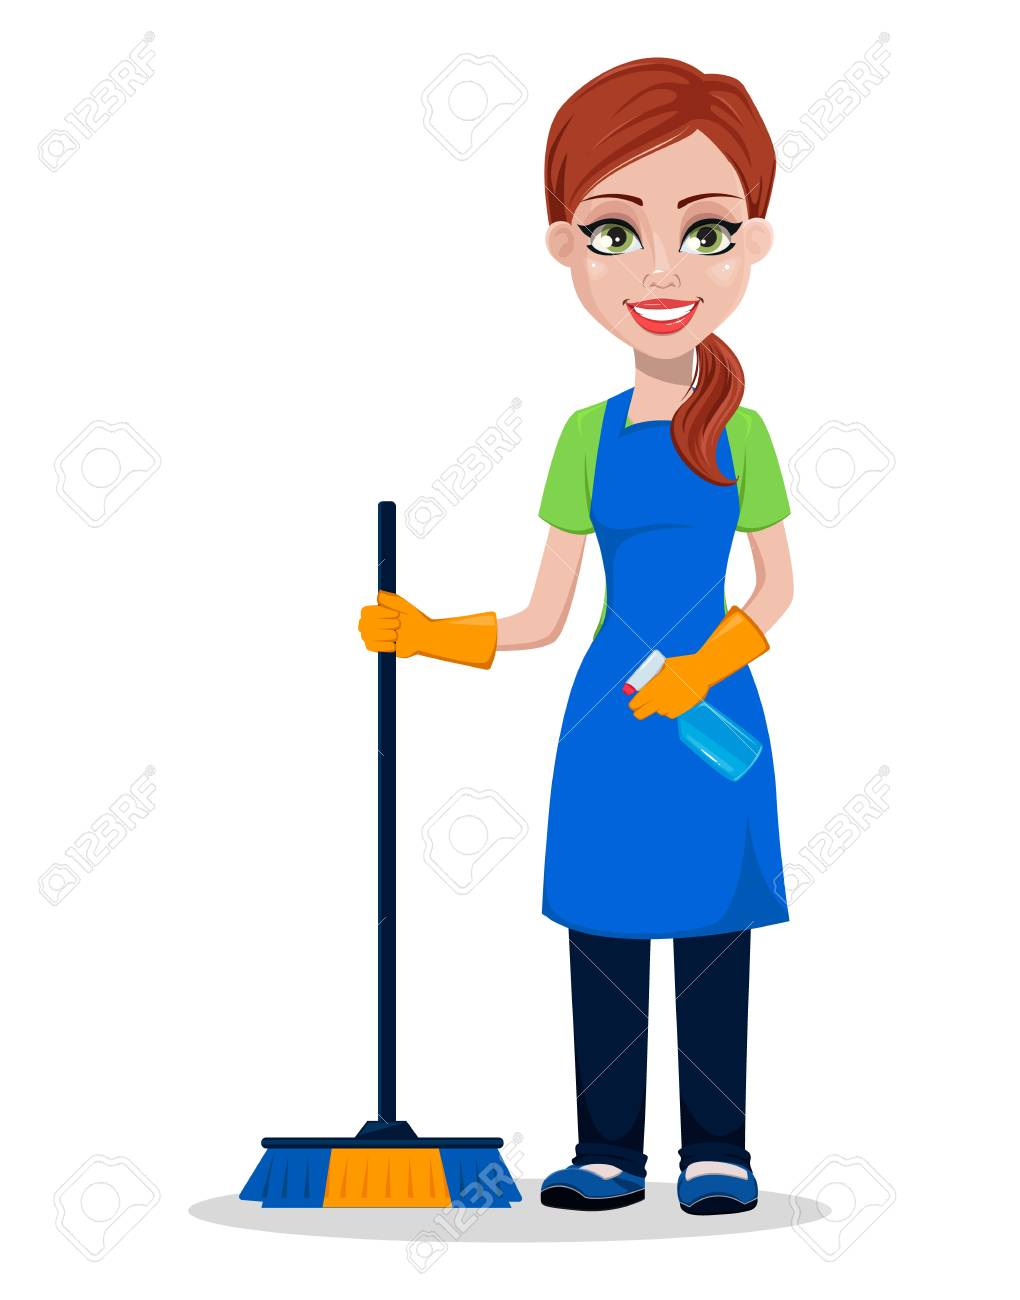 Cleaning company staff in uniform. Woman cartoon character cleaner holding brush and sprayer. Vector illustration. - 103283156